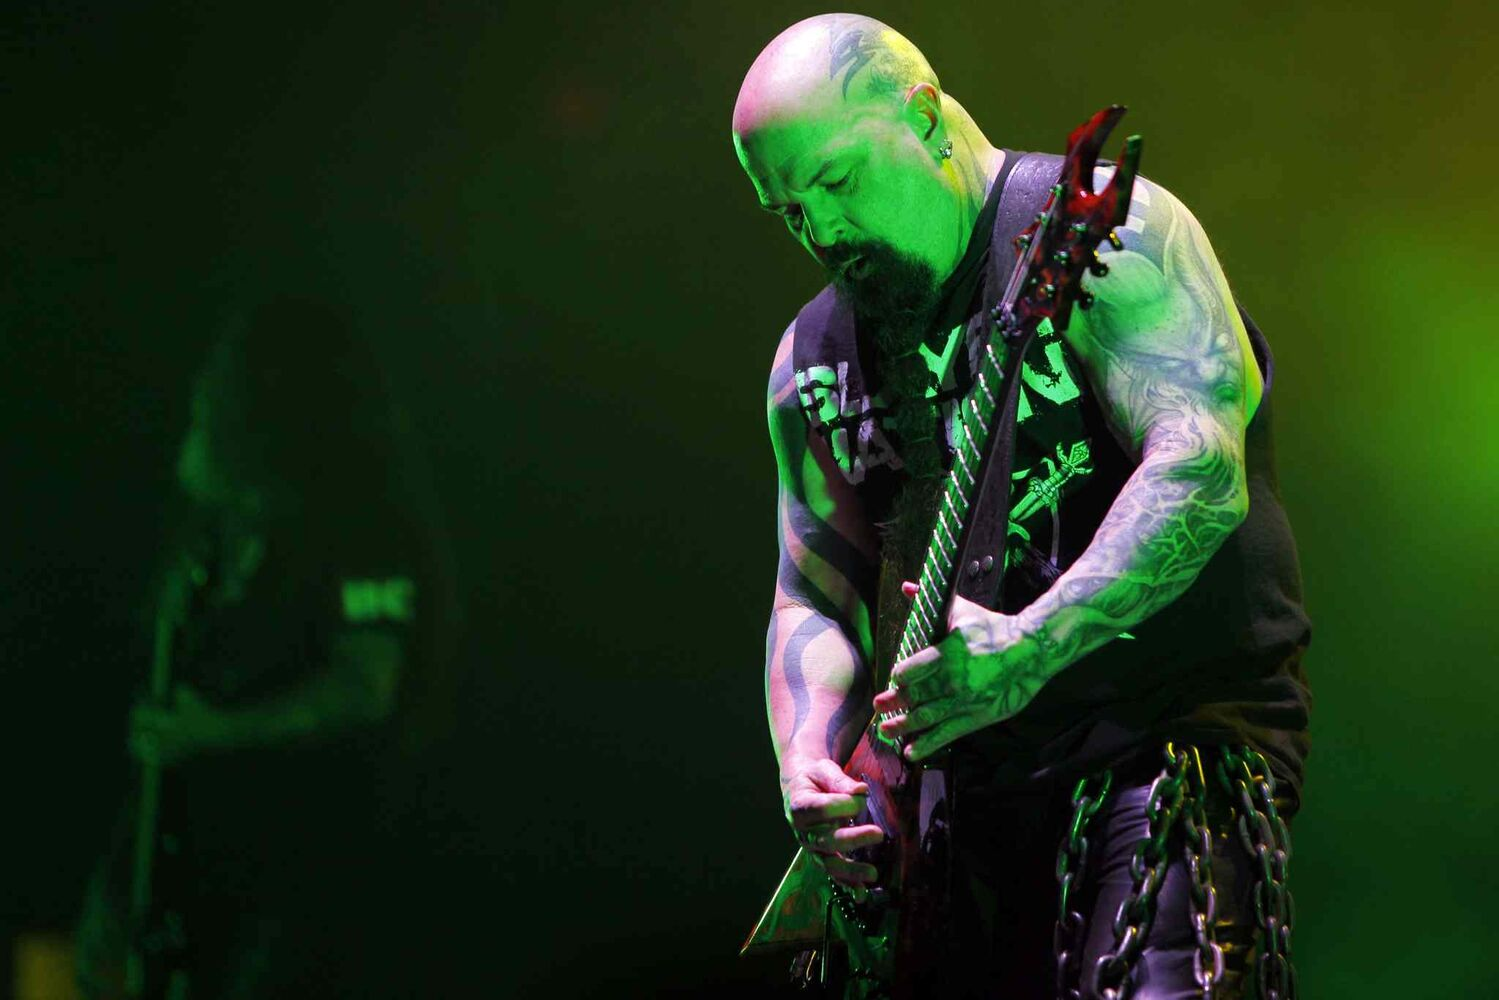 Guitarist Kerry King busts out a guitar solo. (BORIS MINKEVICH / WINNIPEG FREE PRESS)